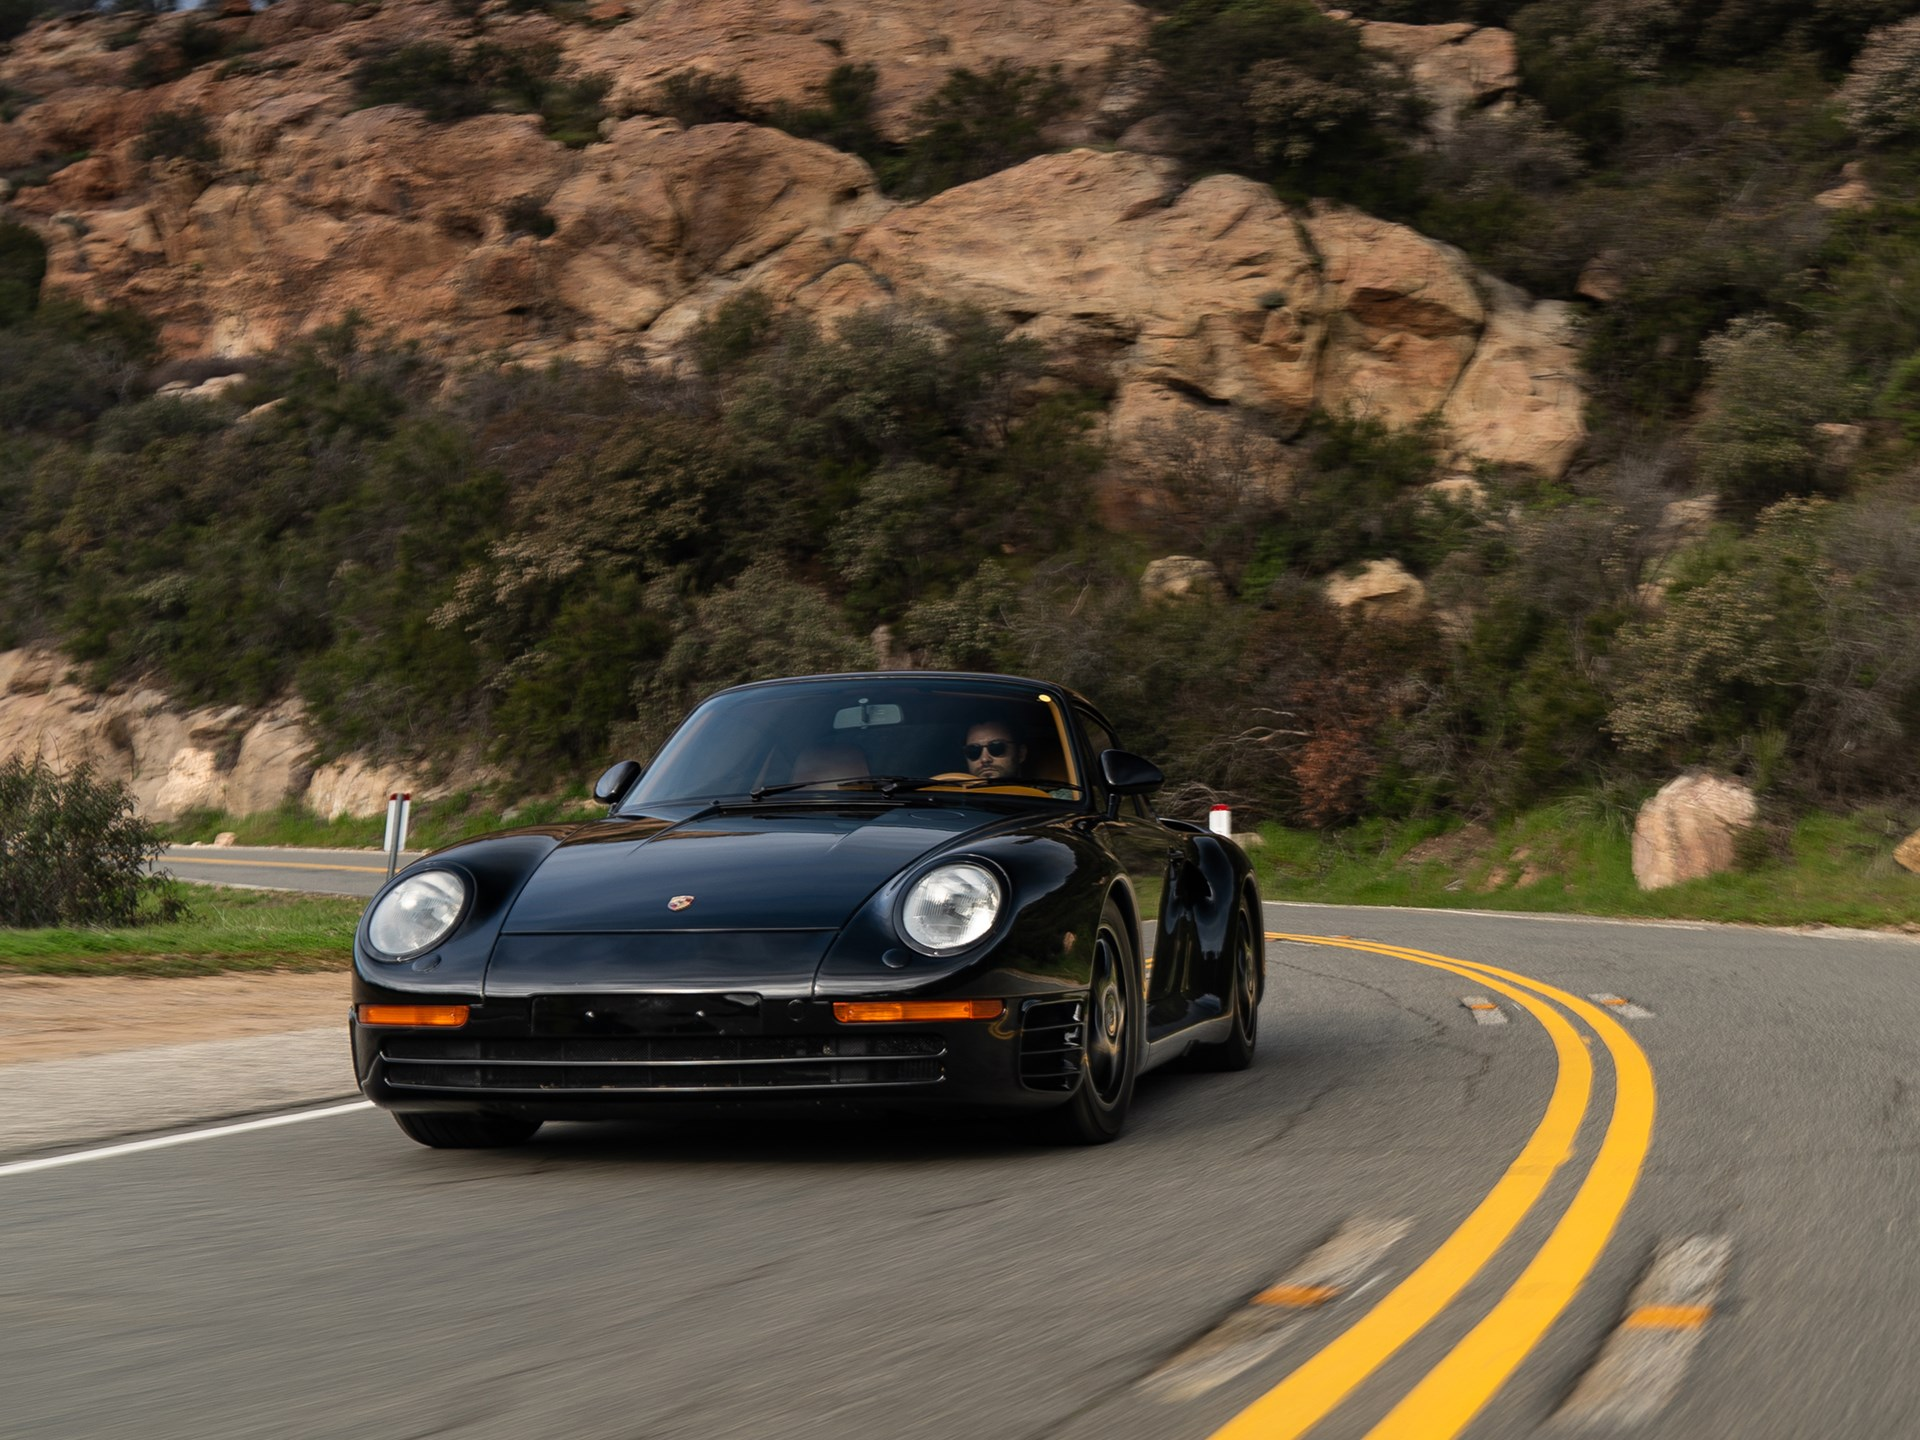 This Porsche 959 is packed with tech, and custom touches thumbnail